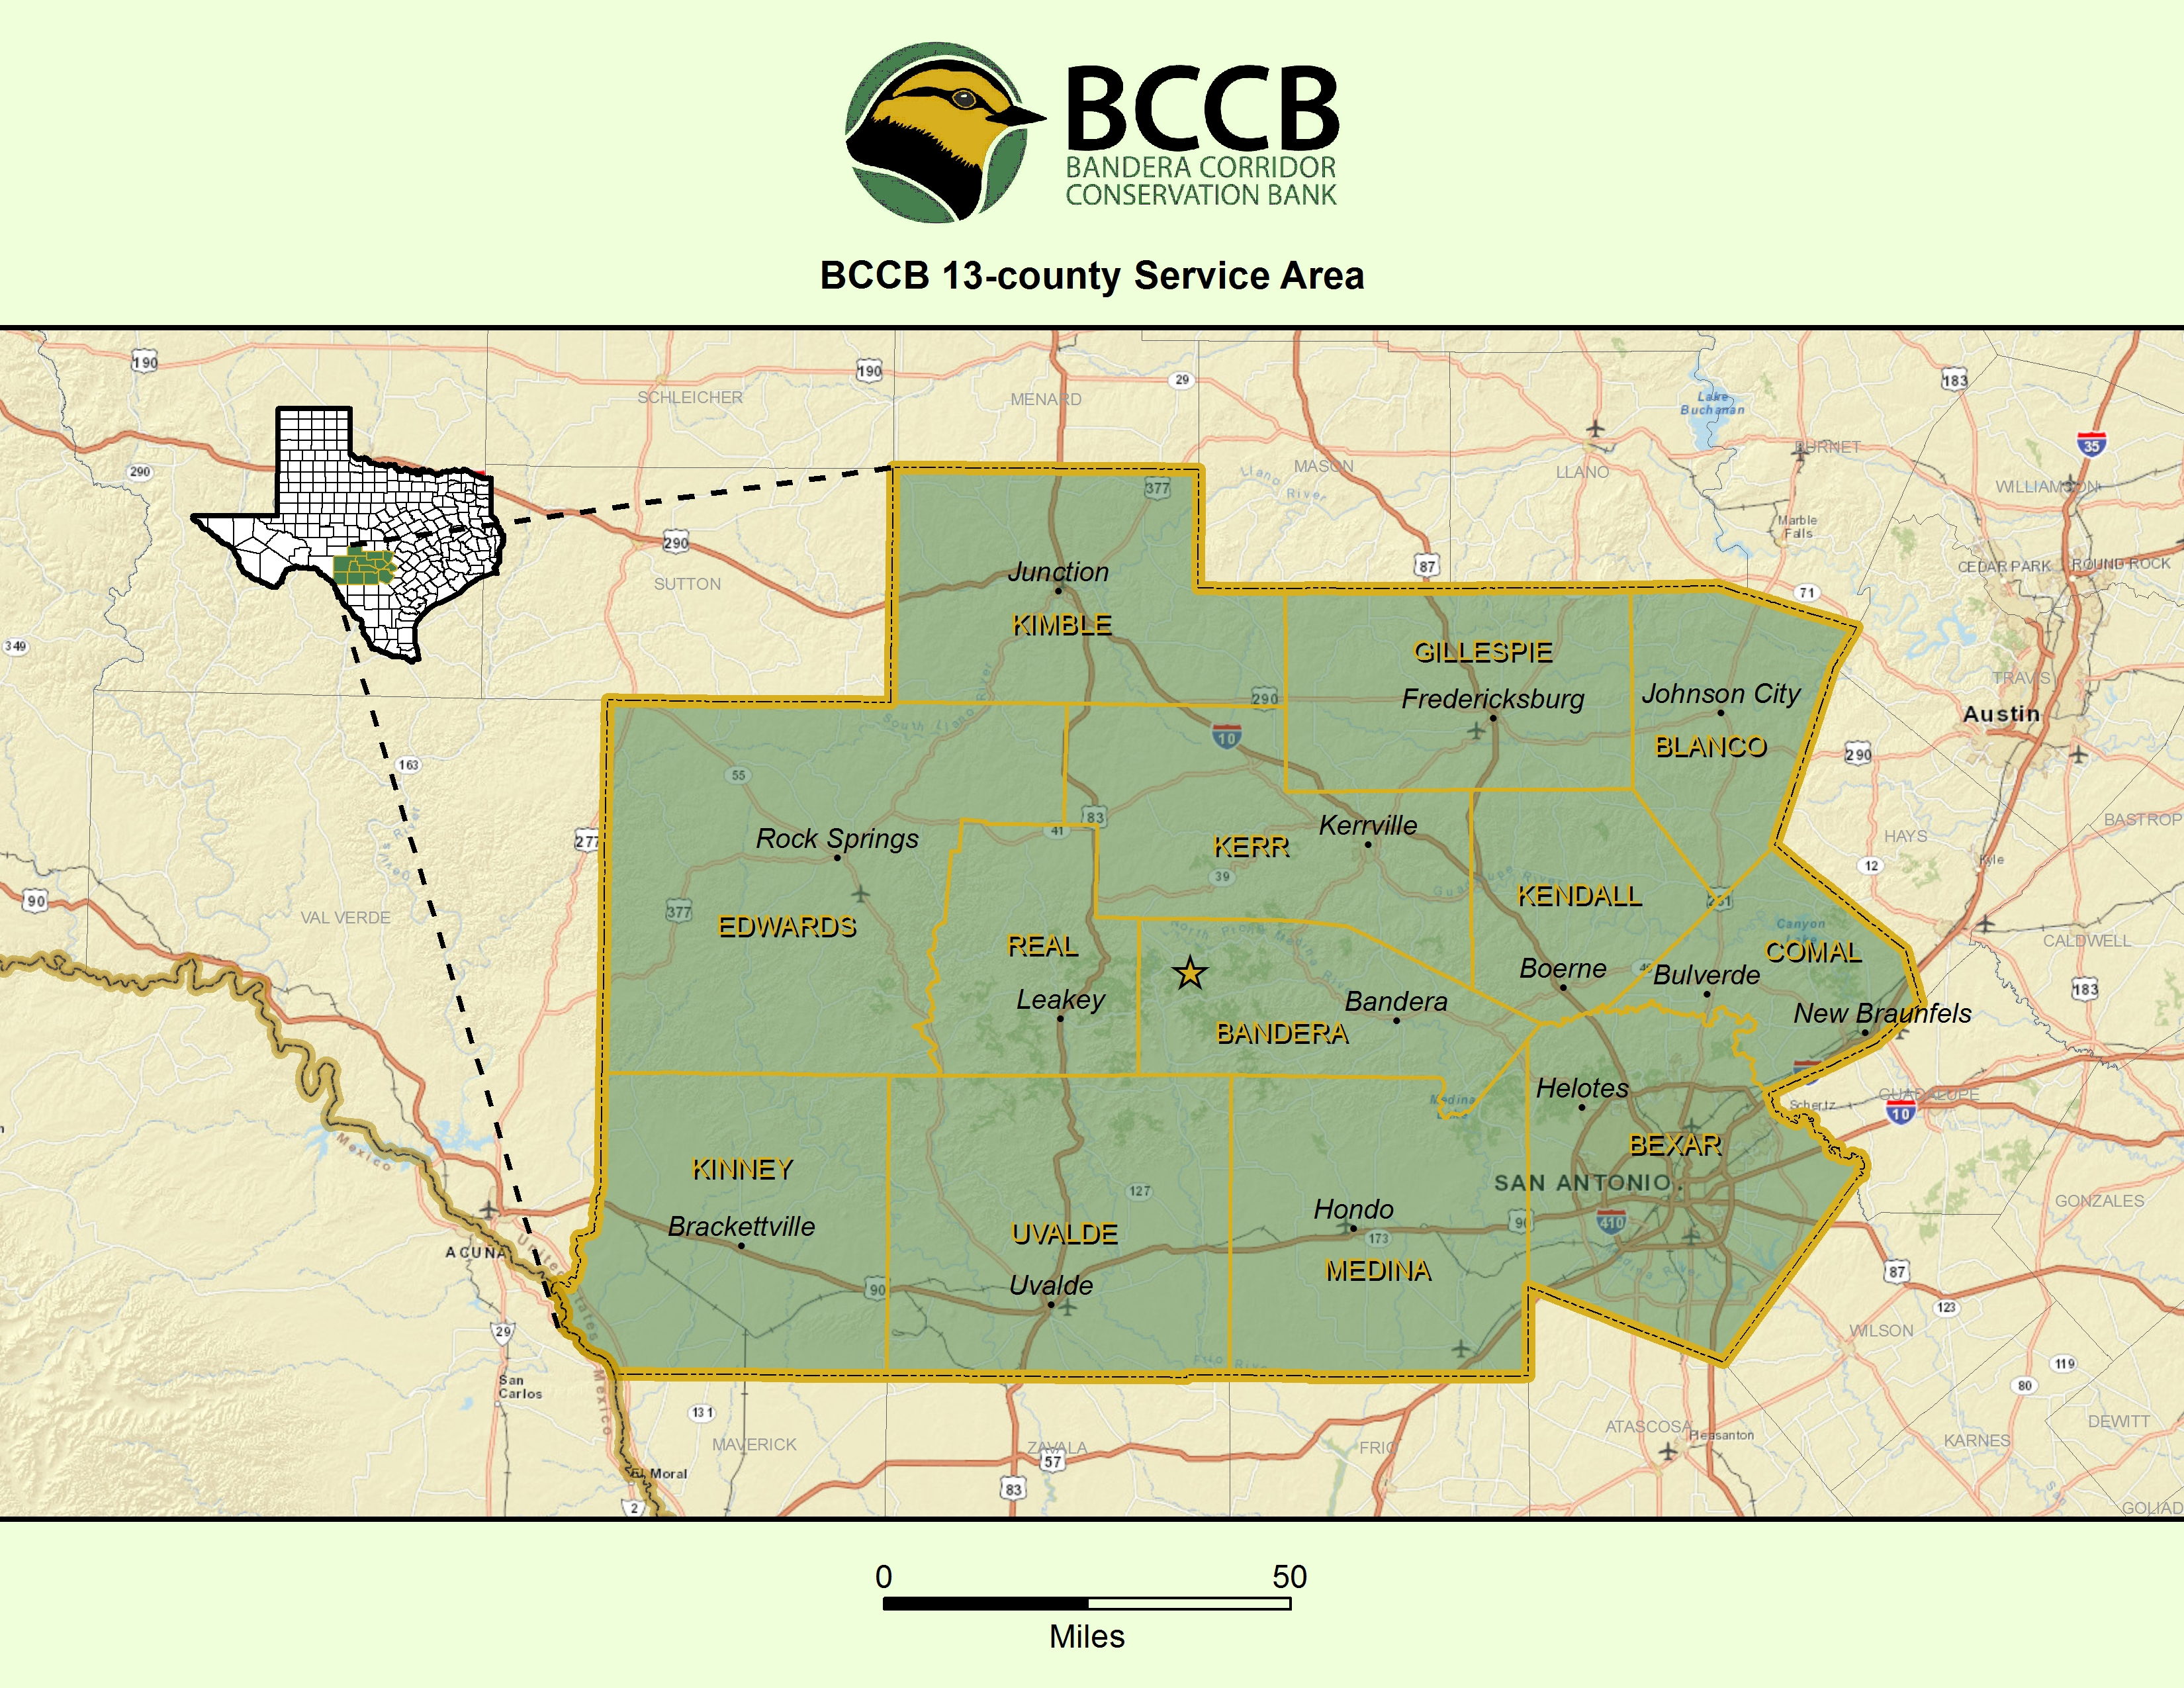 Image of Bandera Corridor Conservation Bank 13-county Service Area, including: Bandera, Bexar, Blanco, Comal, Edwards, Gillespie, Kendall, Kerr, Kimble, Kinney, Medina, Real and Uvalde counties.